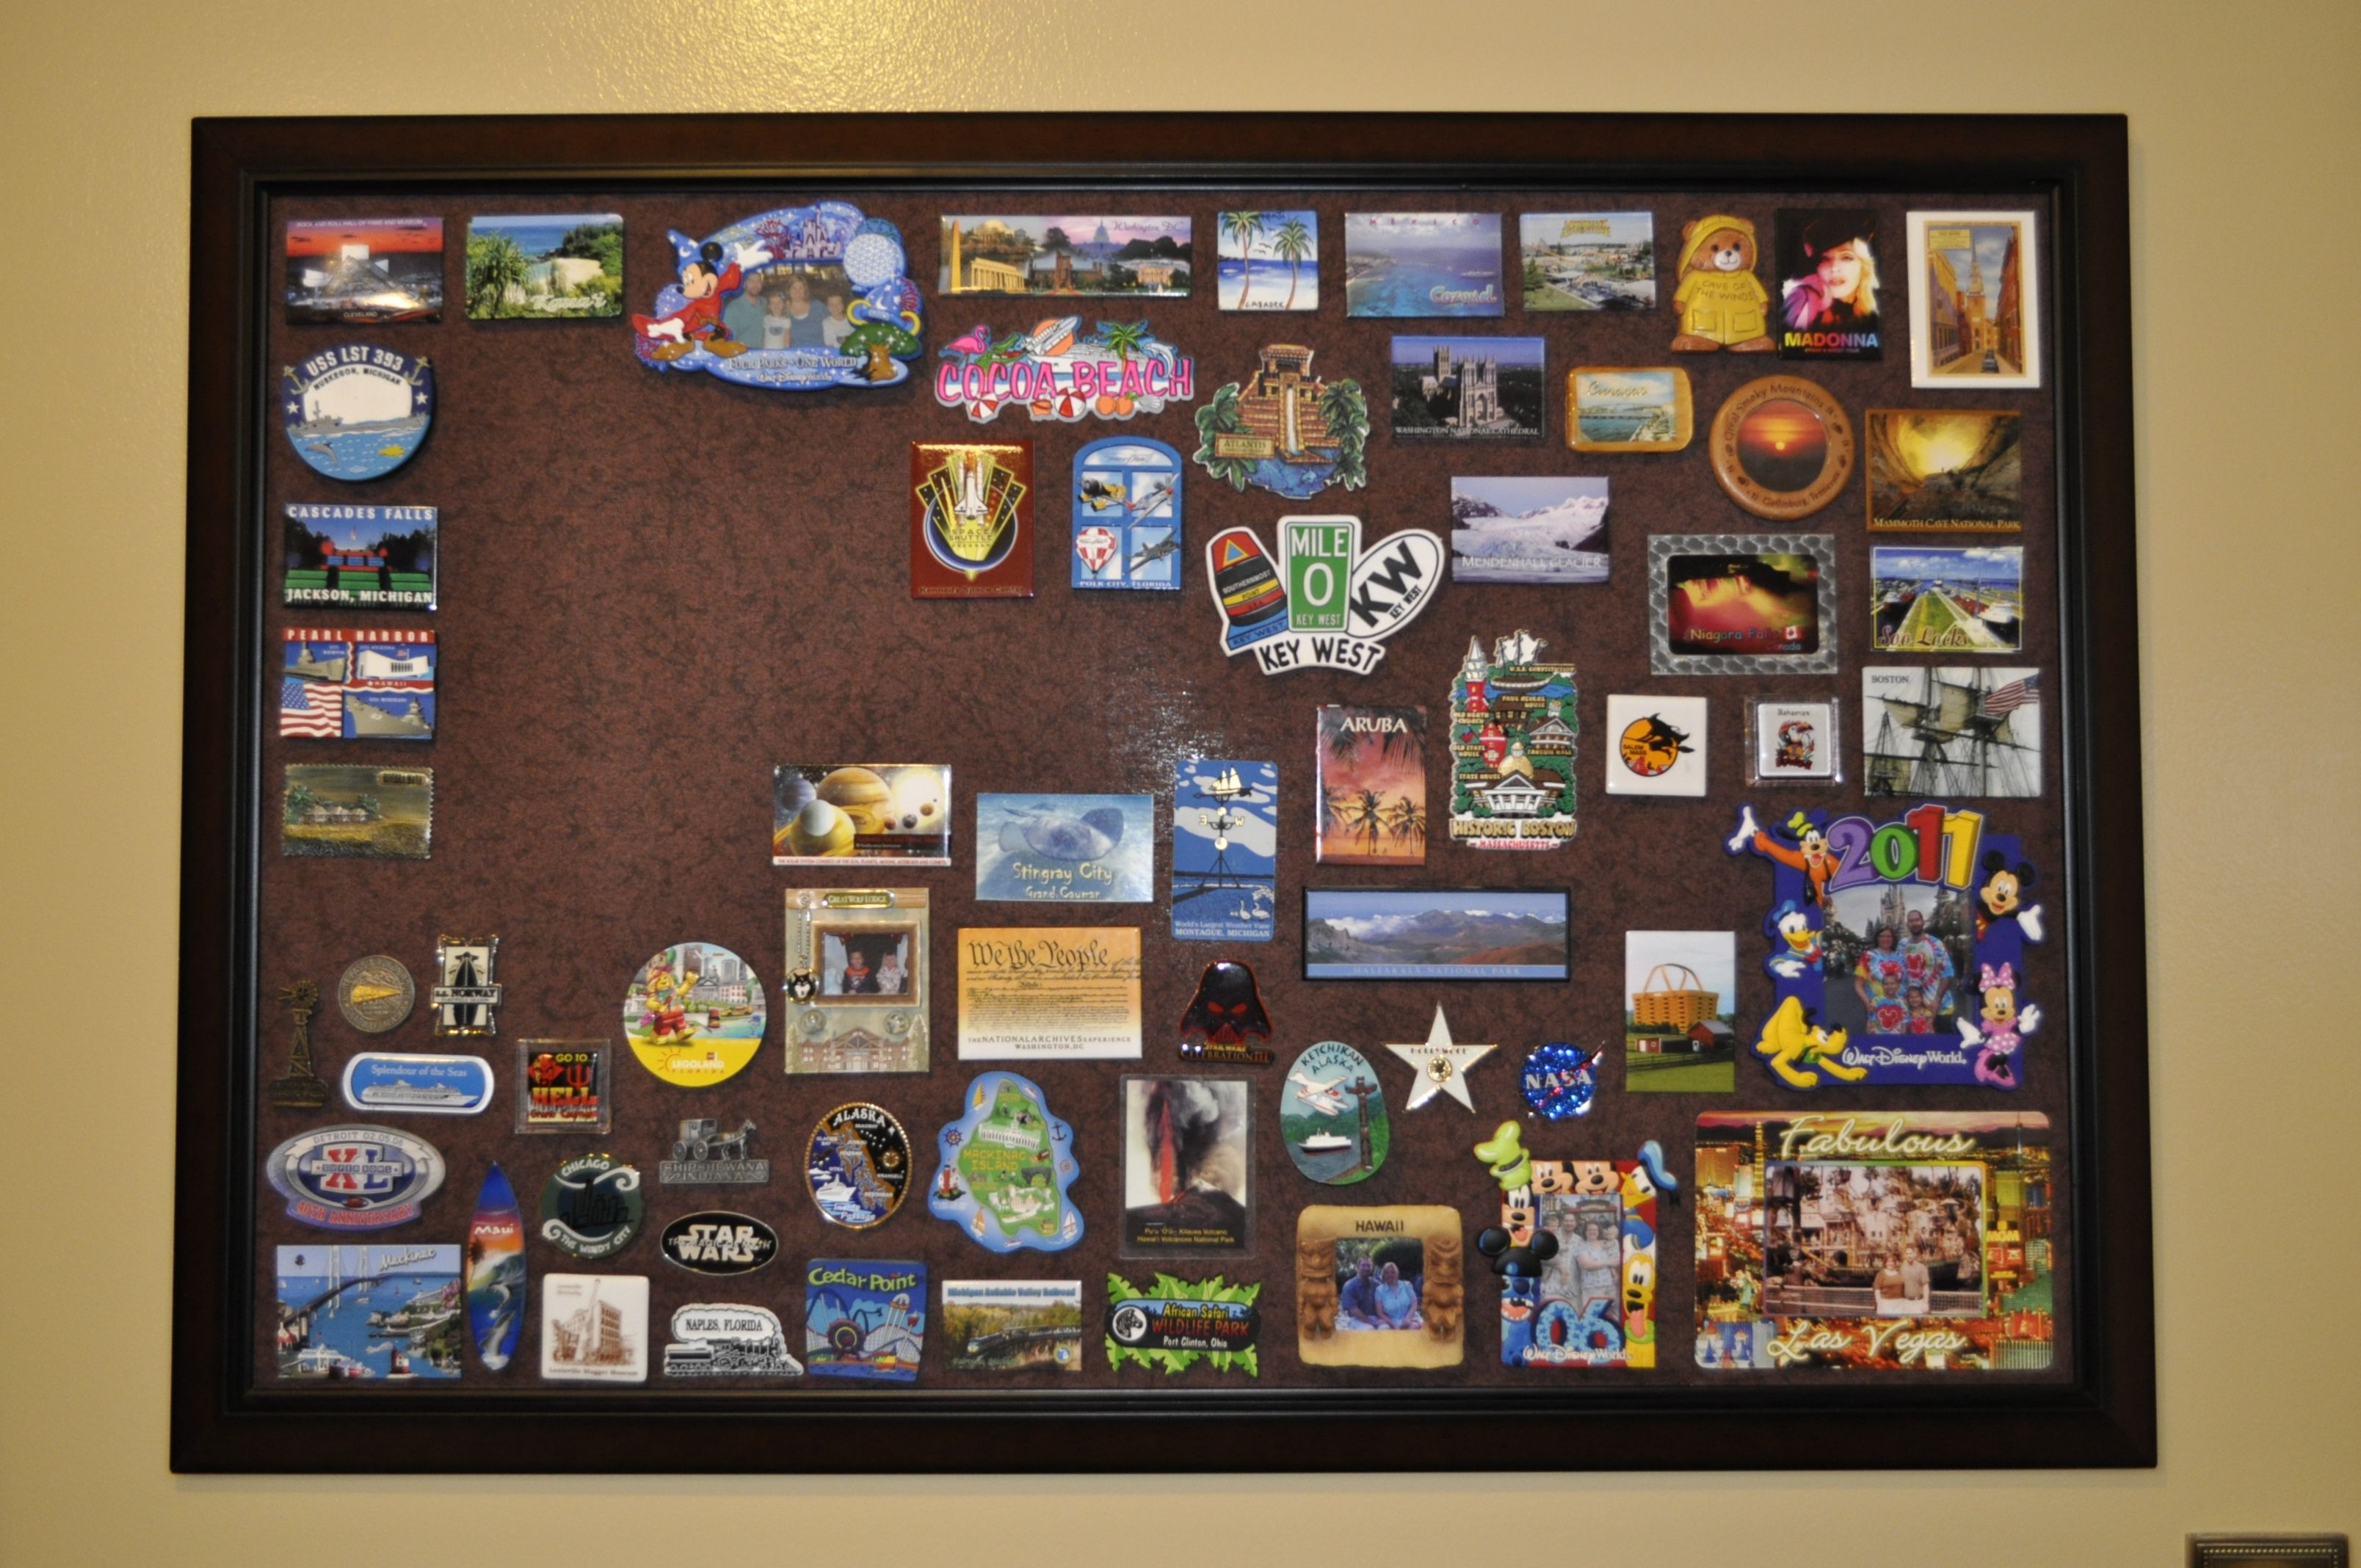 My Magnetic Travel Magnetic Board Buy Frame Insert Metal Bought In Hvac Section Of Hardware